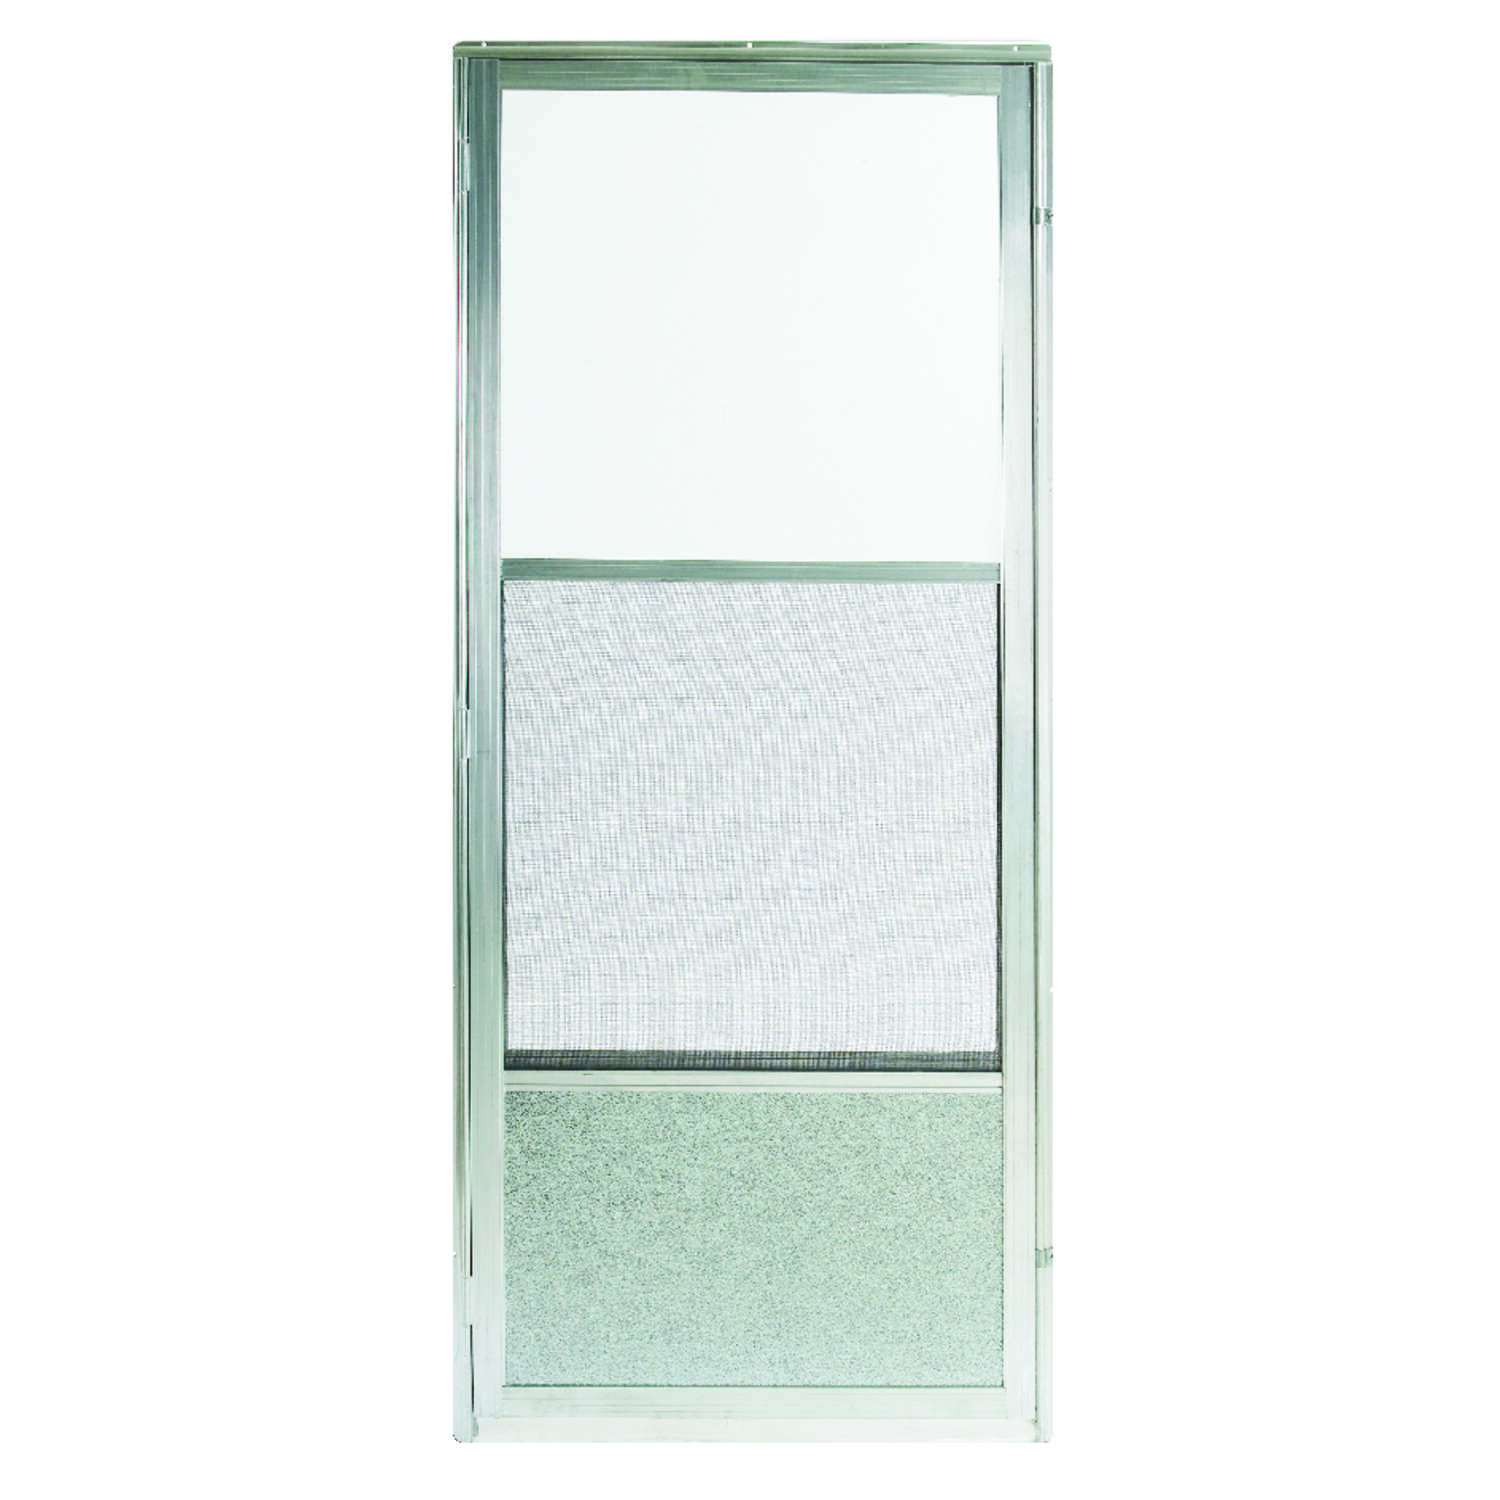 Croft  80 in. H x 36 in. W Aluminum  Mid-View  Reversible  Reversible Self-Storing Storm Door